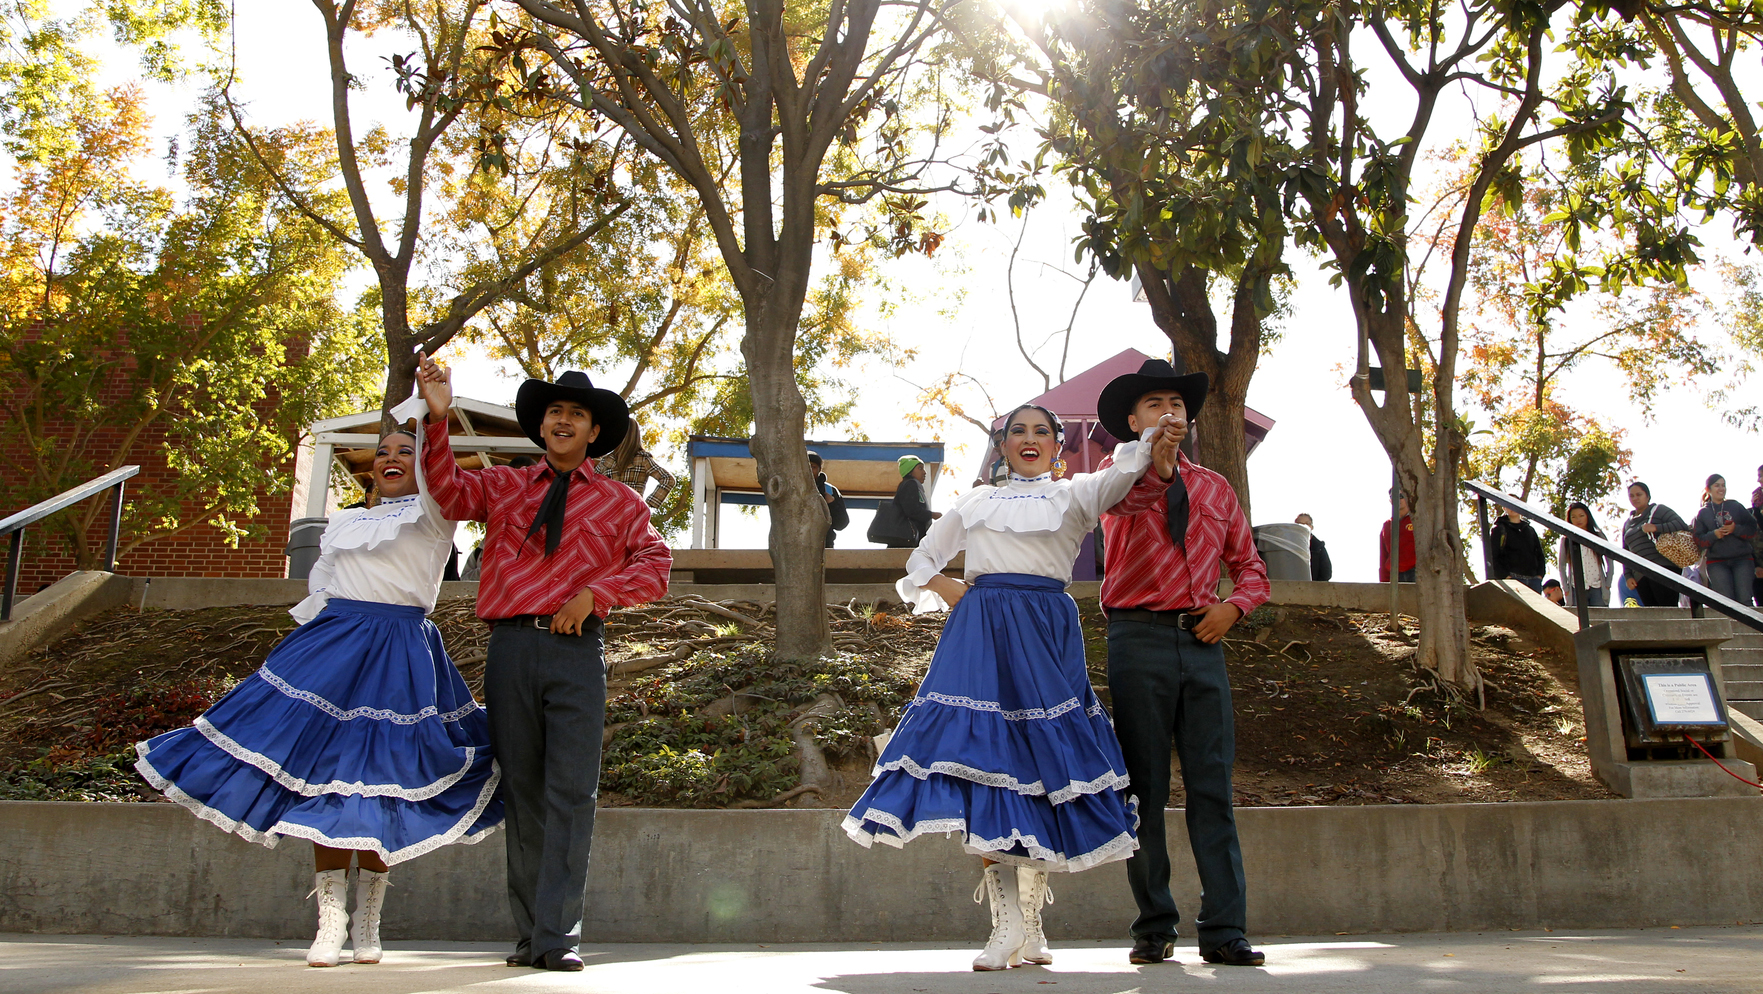 Hispanic dancers on stage in front of the food court.